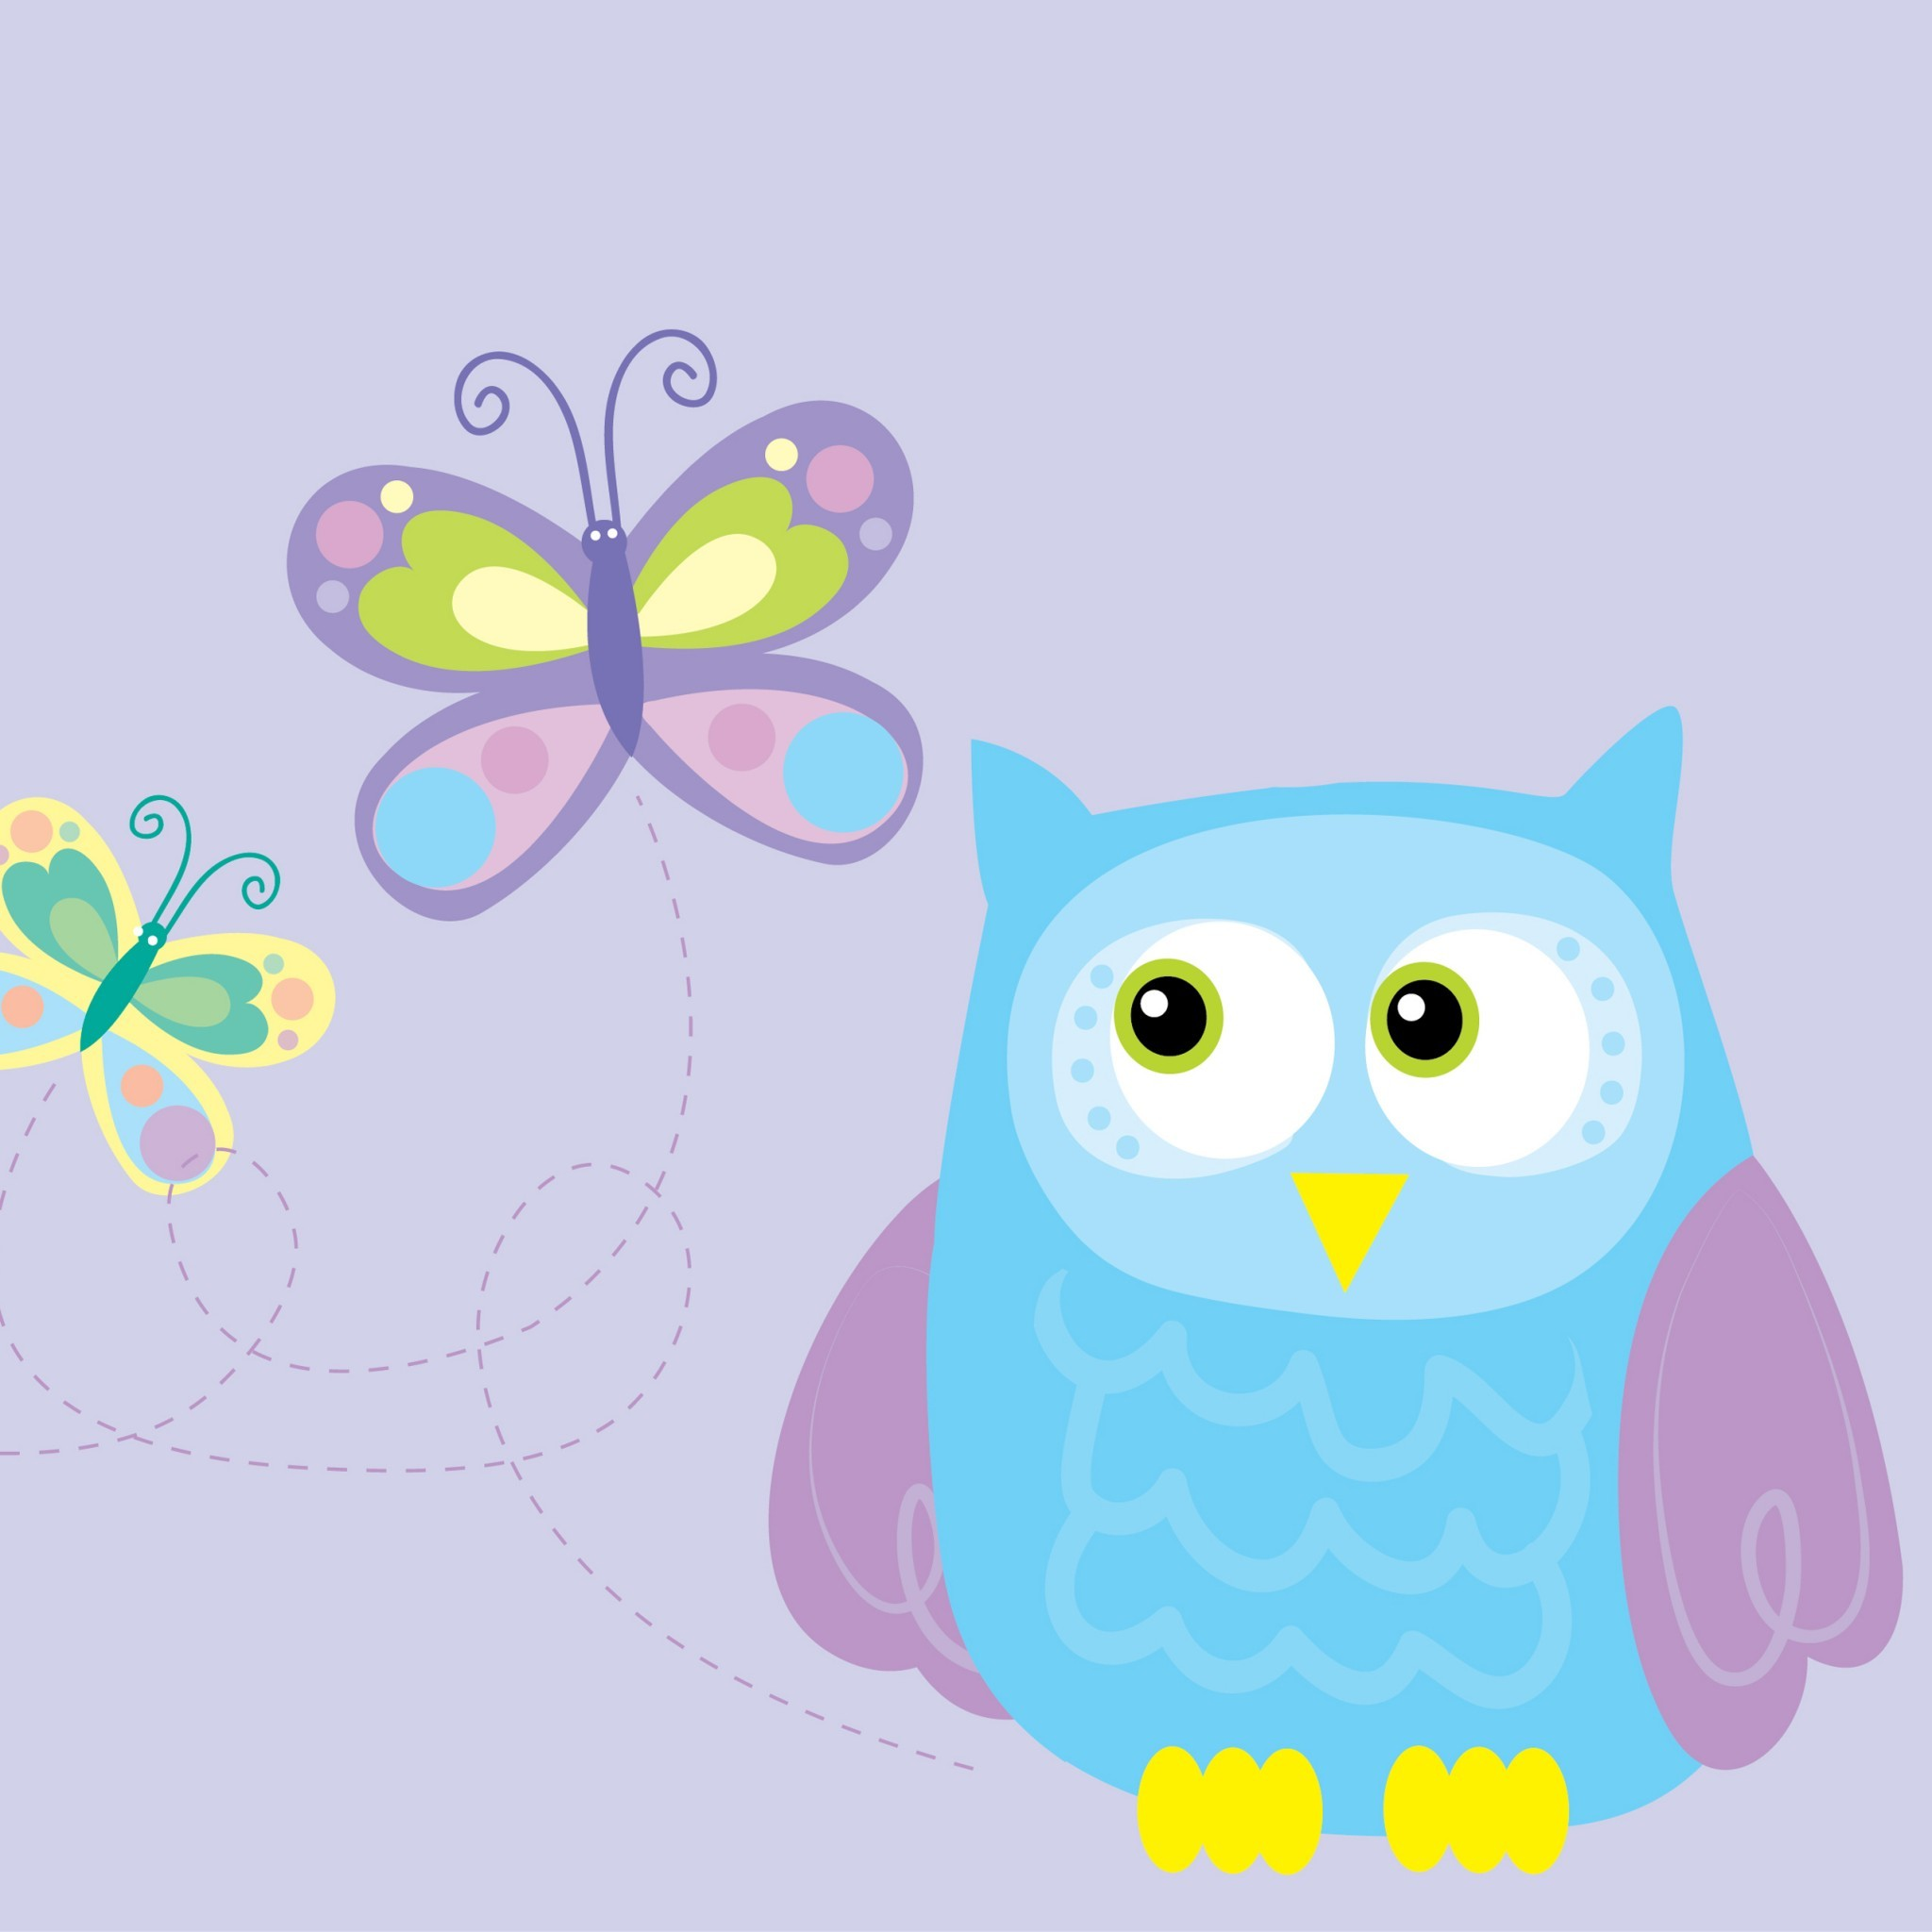 Cute cartoon owls pictures